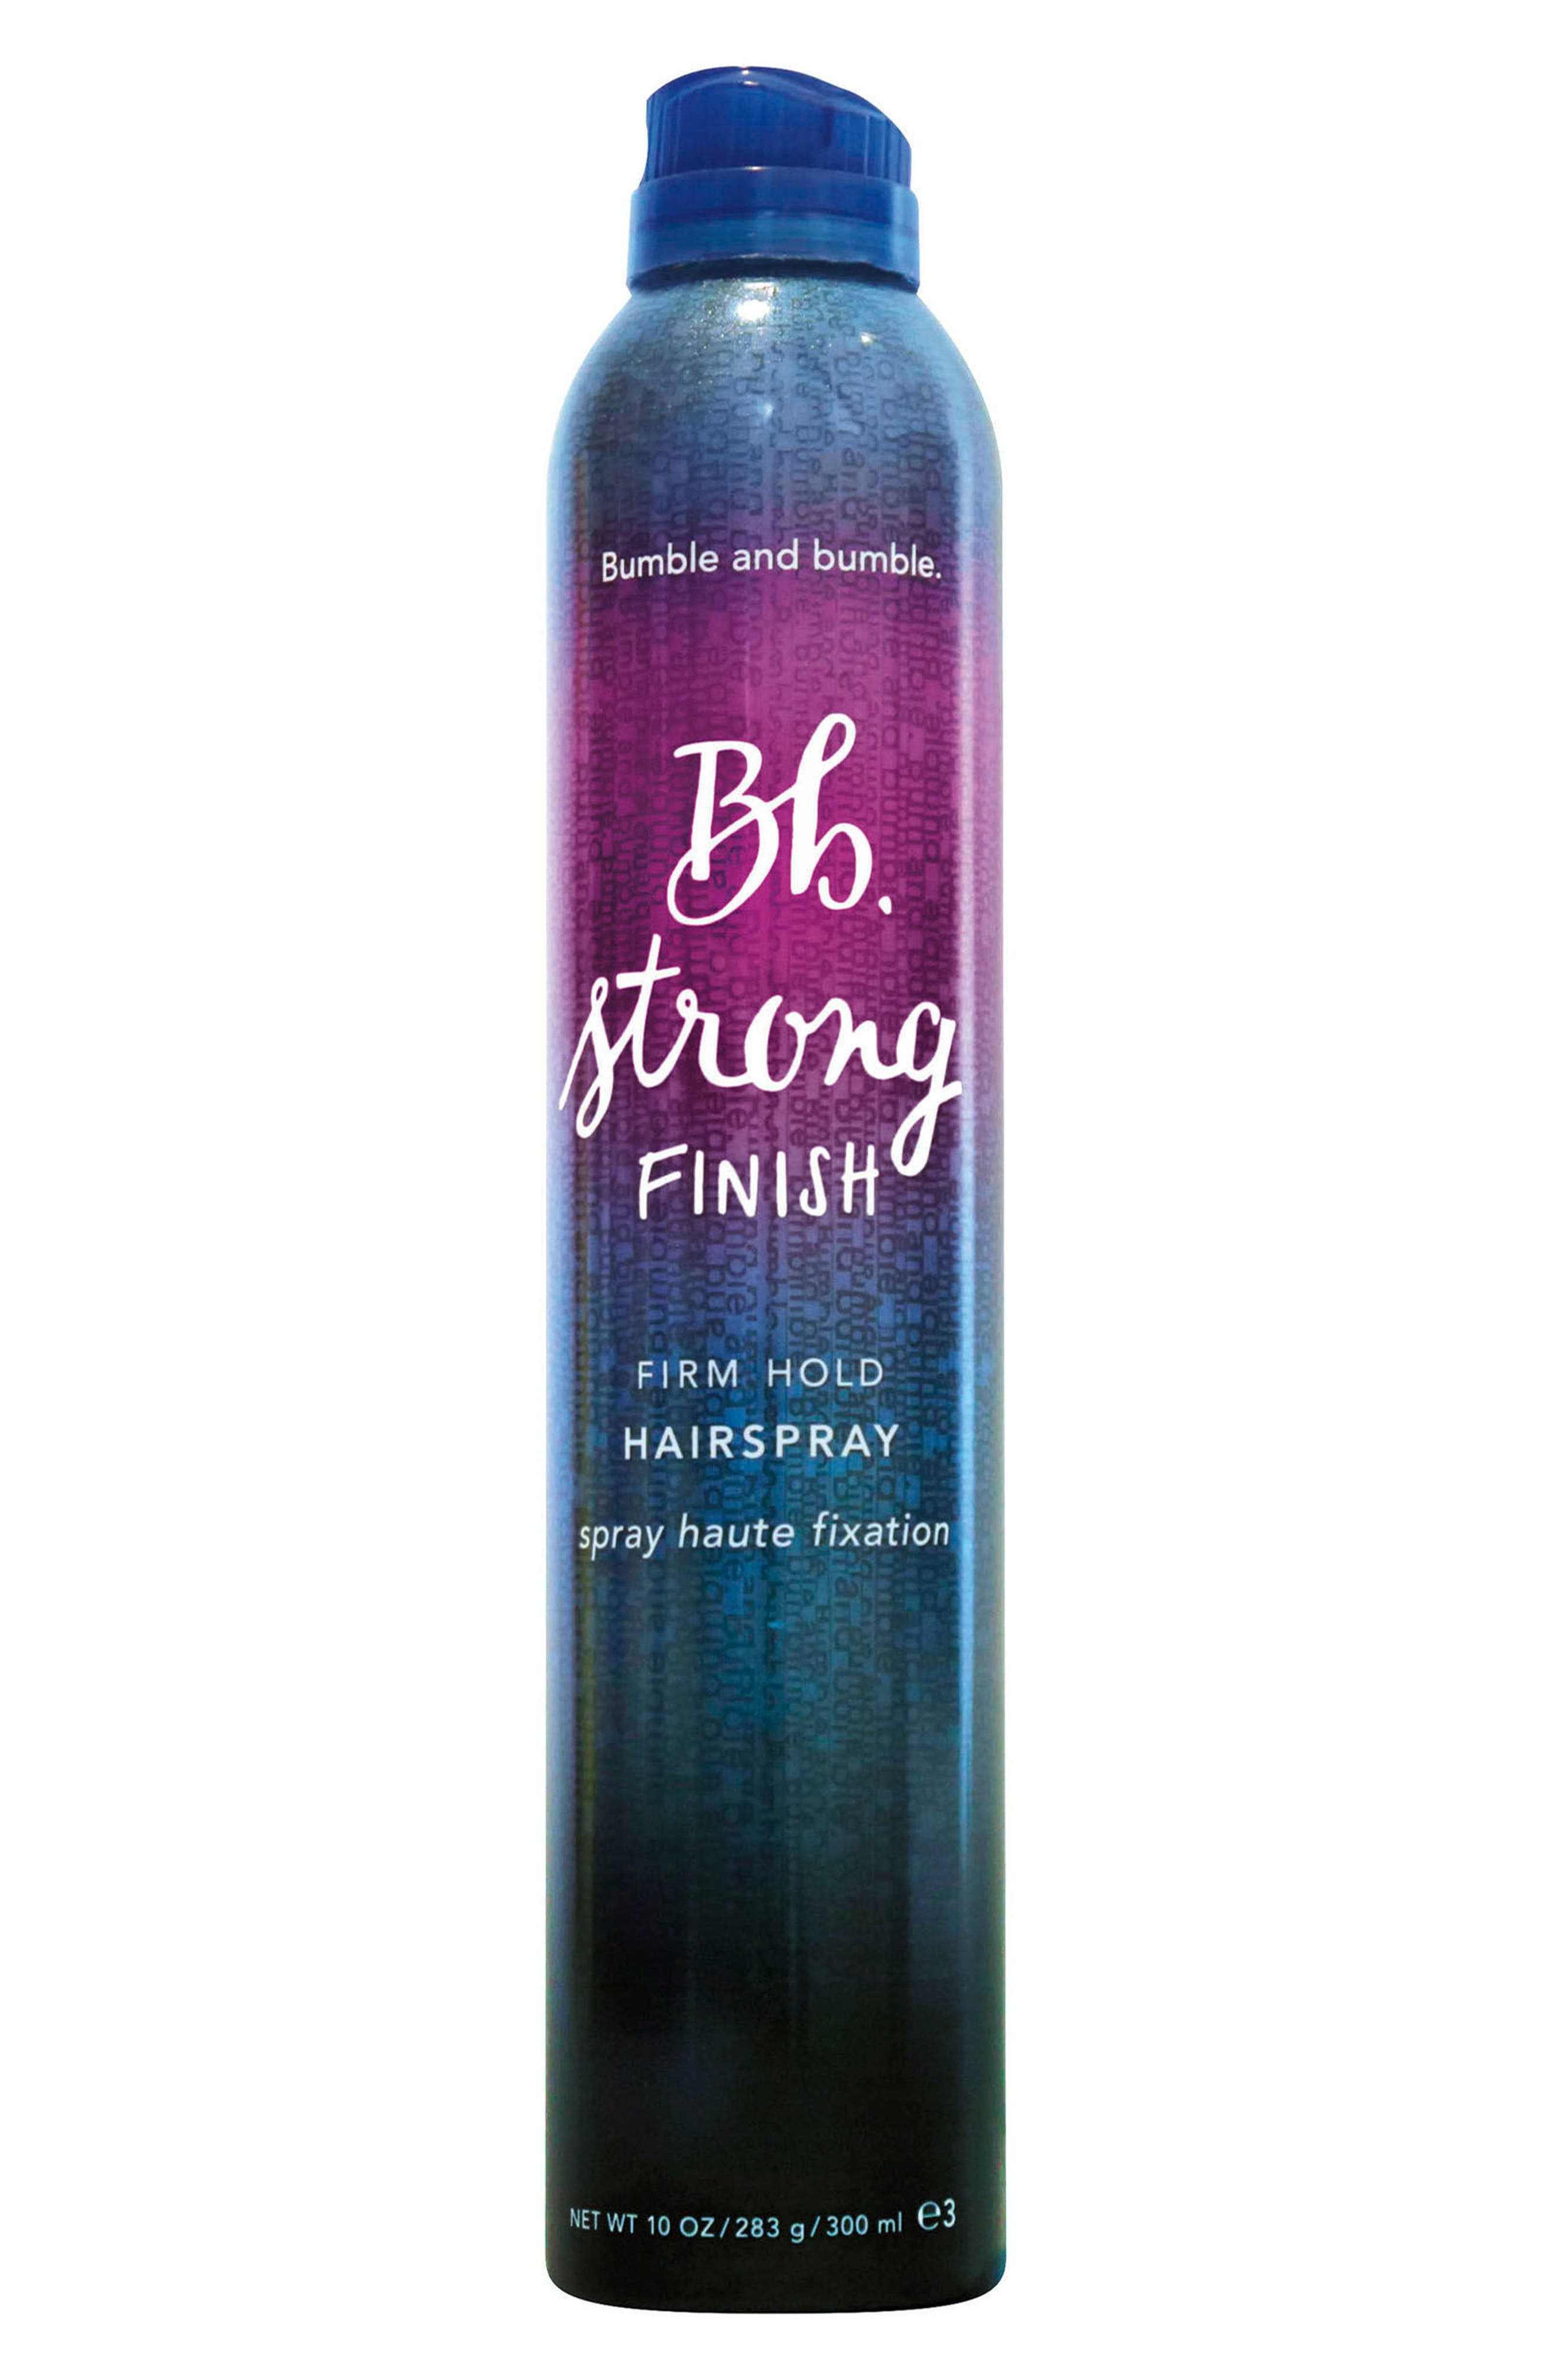 Strong Finish Firm Hold Hairspray,                             Main thumbnail 1, color,                             NO COLOR